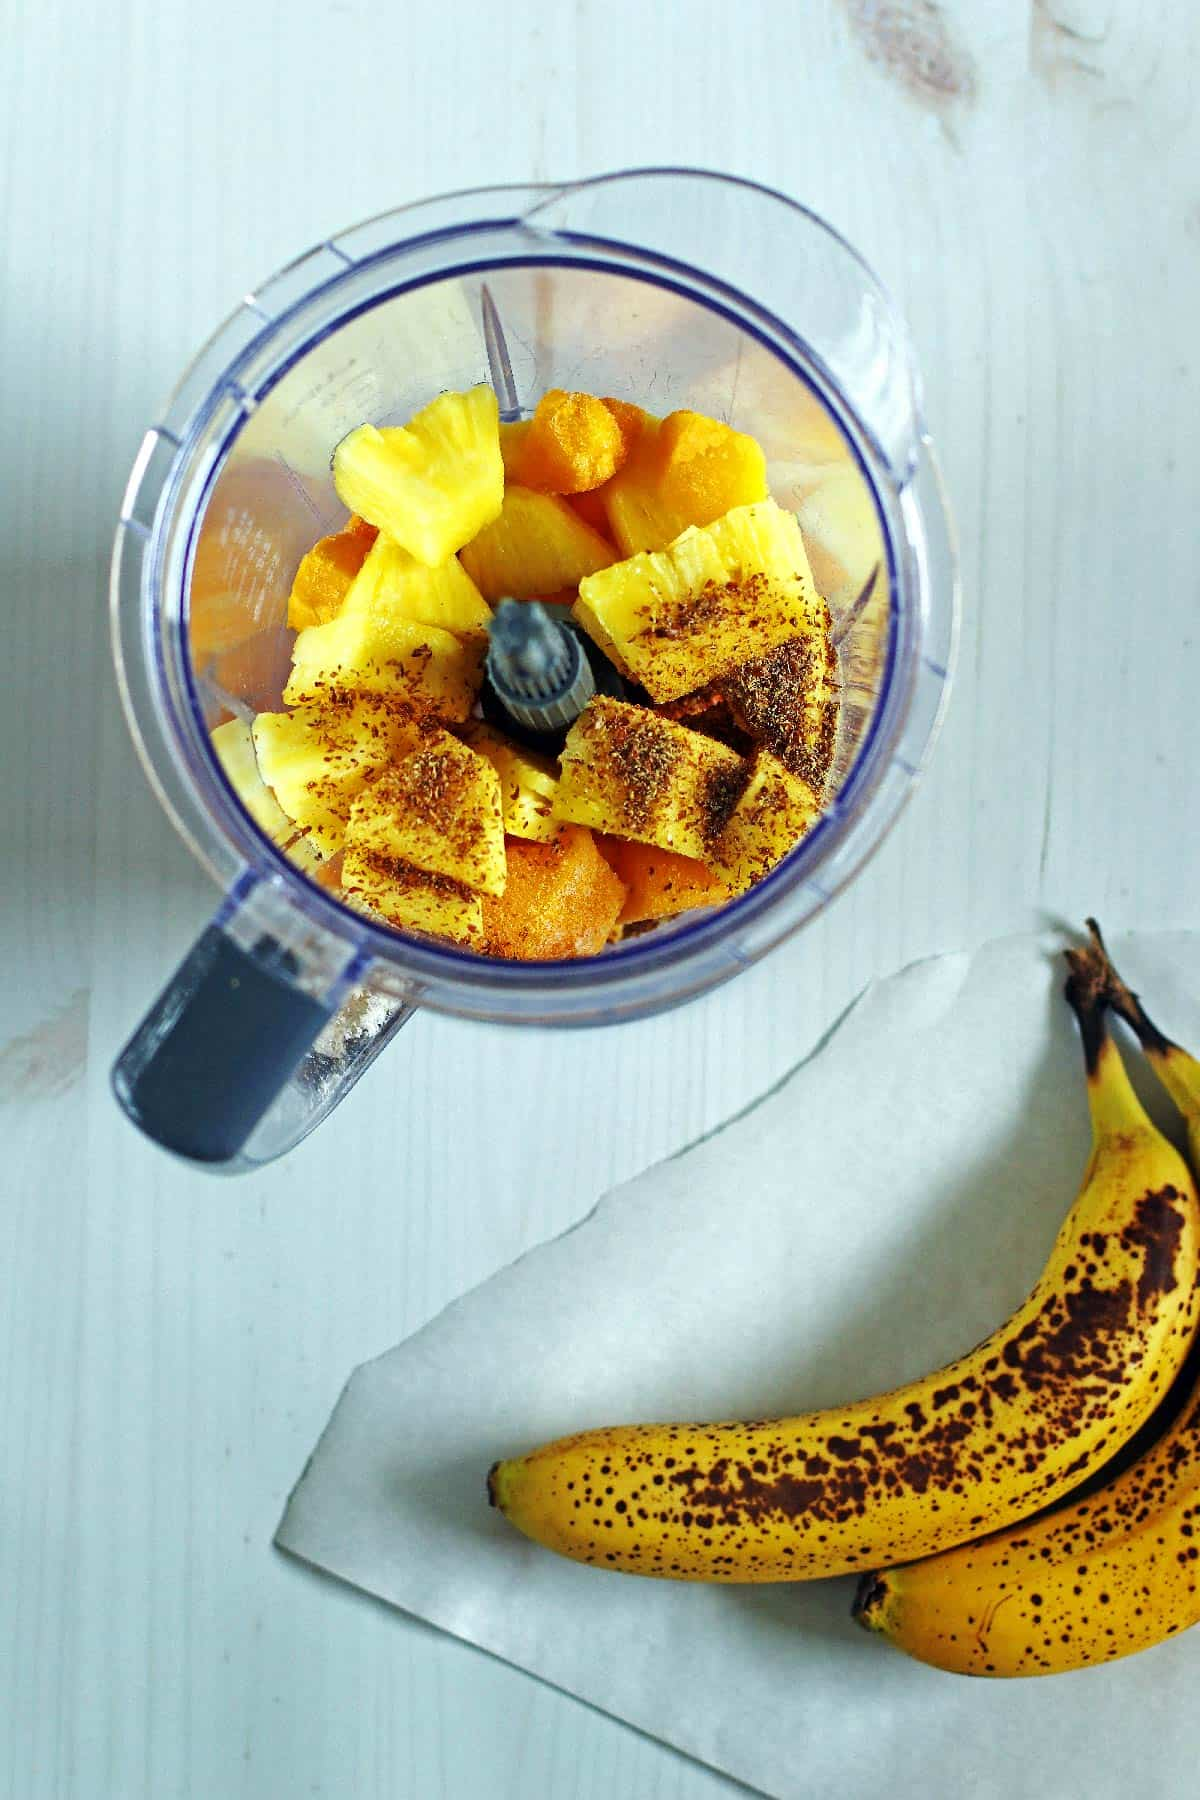 Smoothie ingredients in a blender and bananas next to the blender